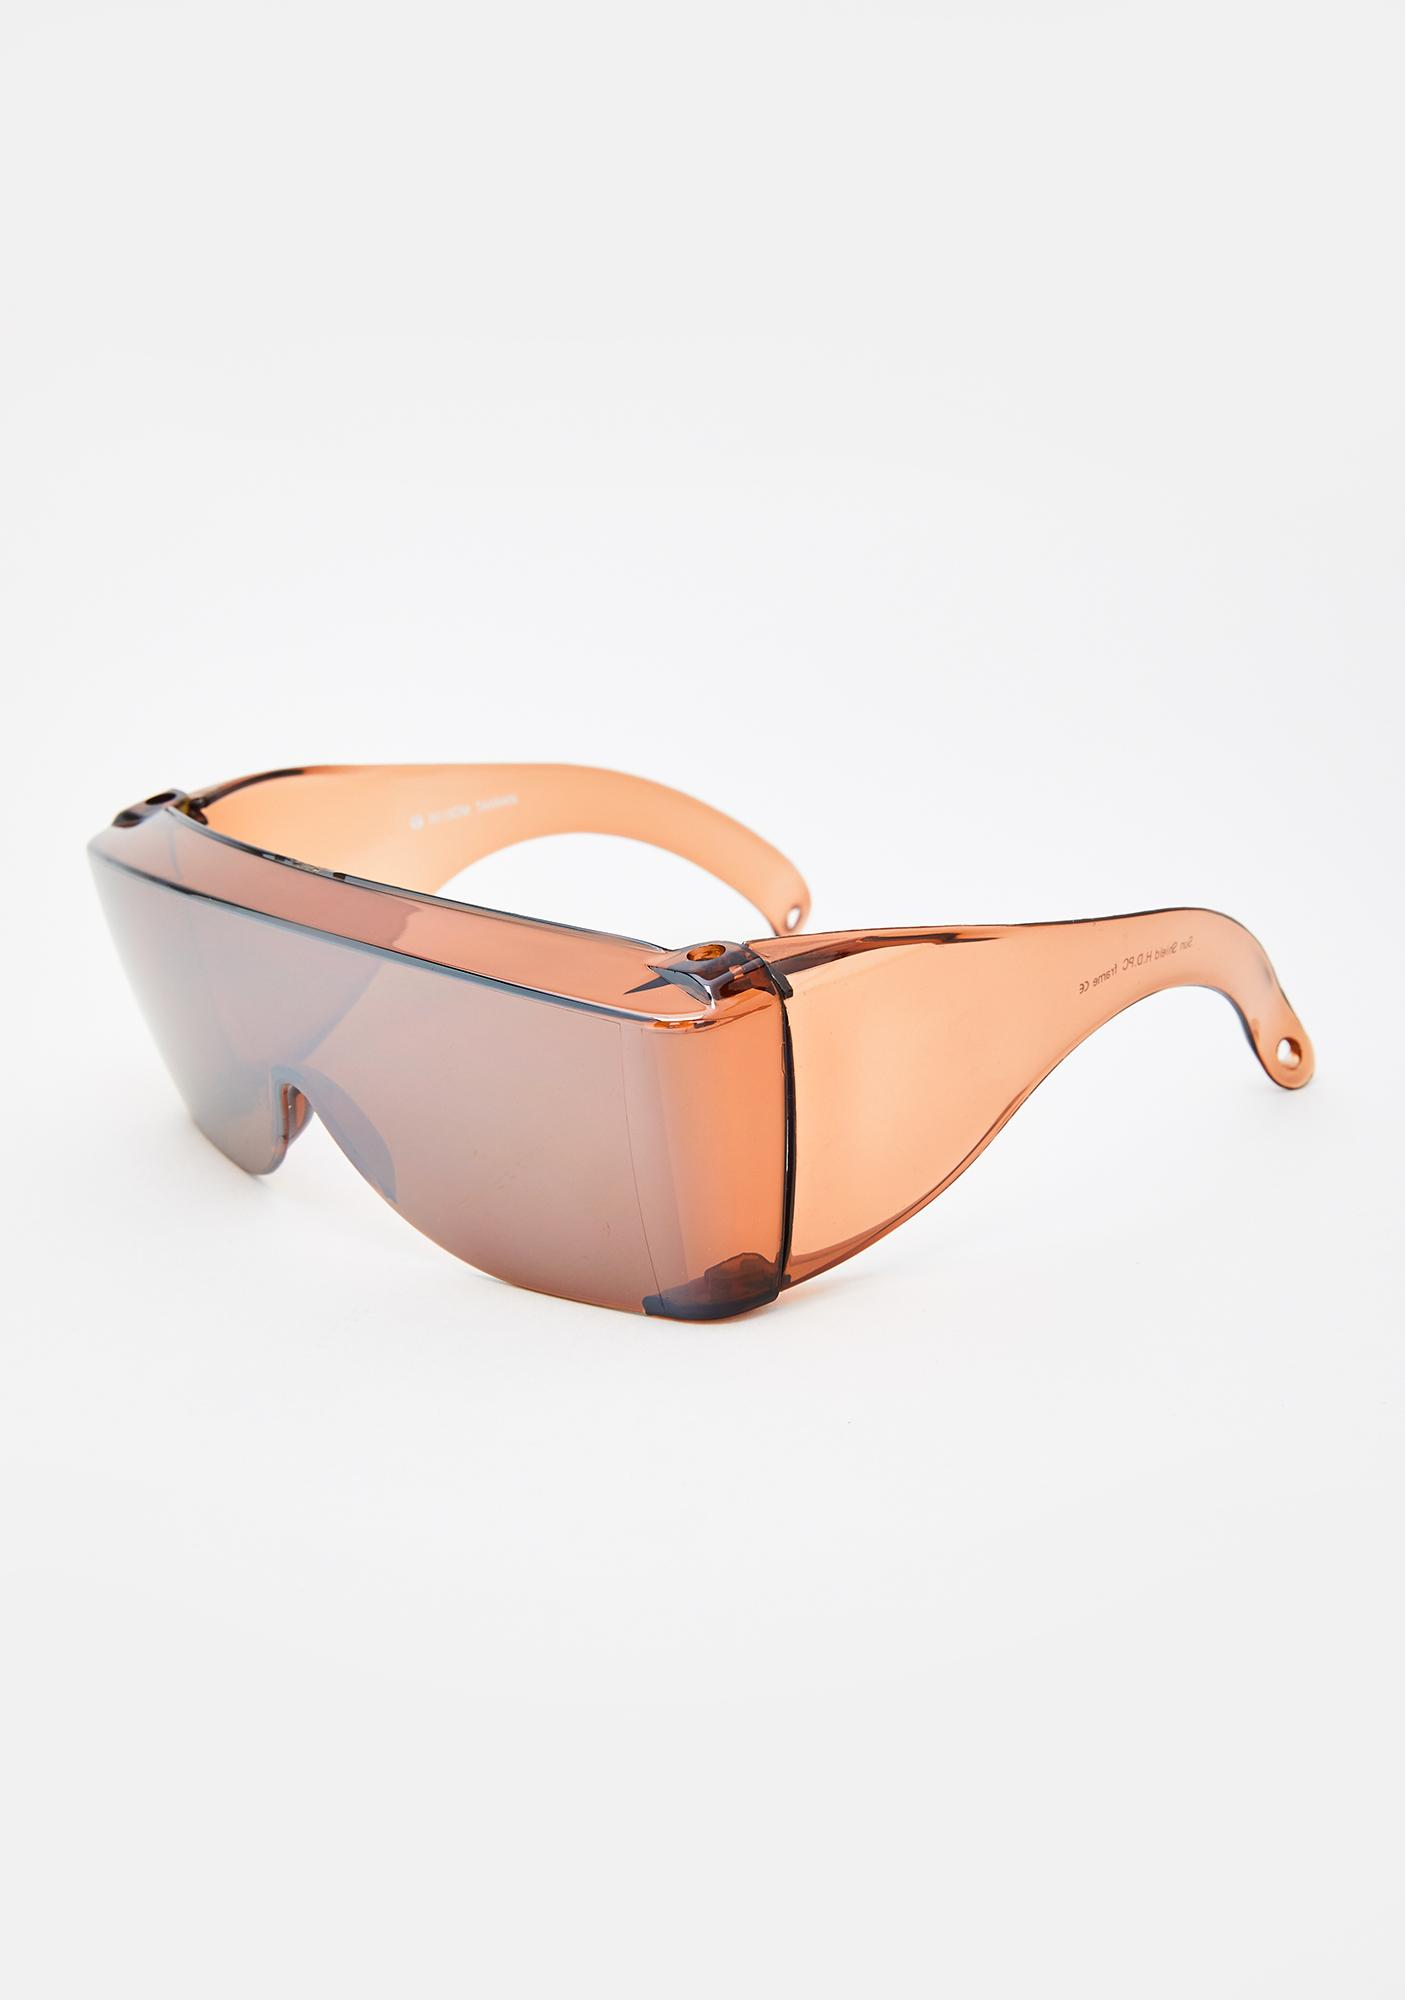 Good Times Eyewear Delorean Shield Sunglasses